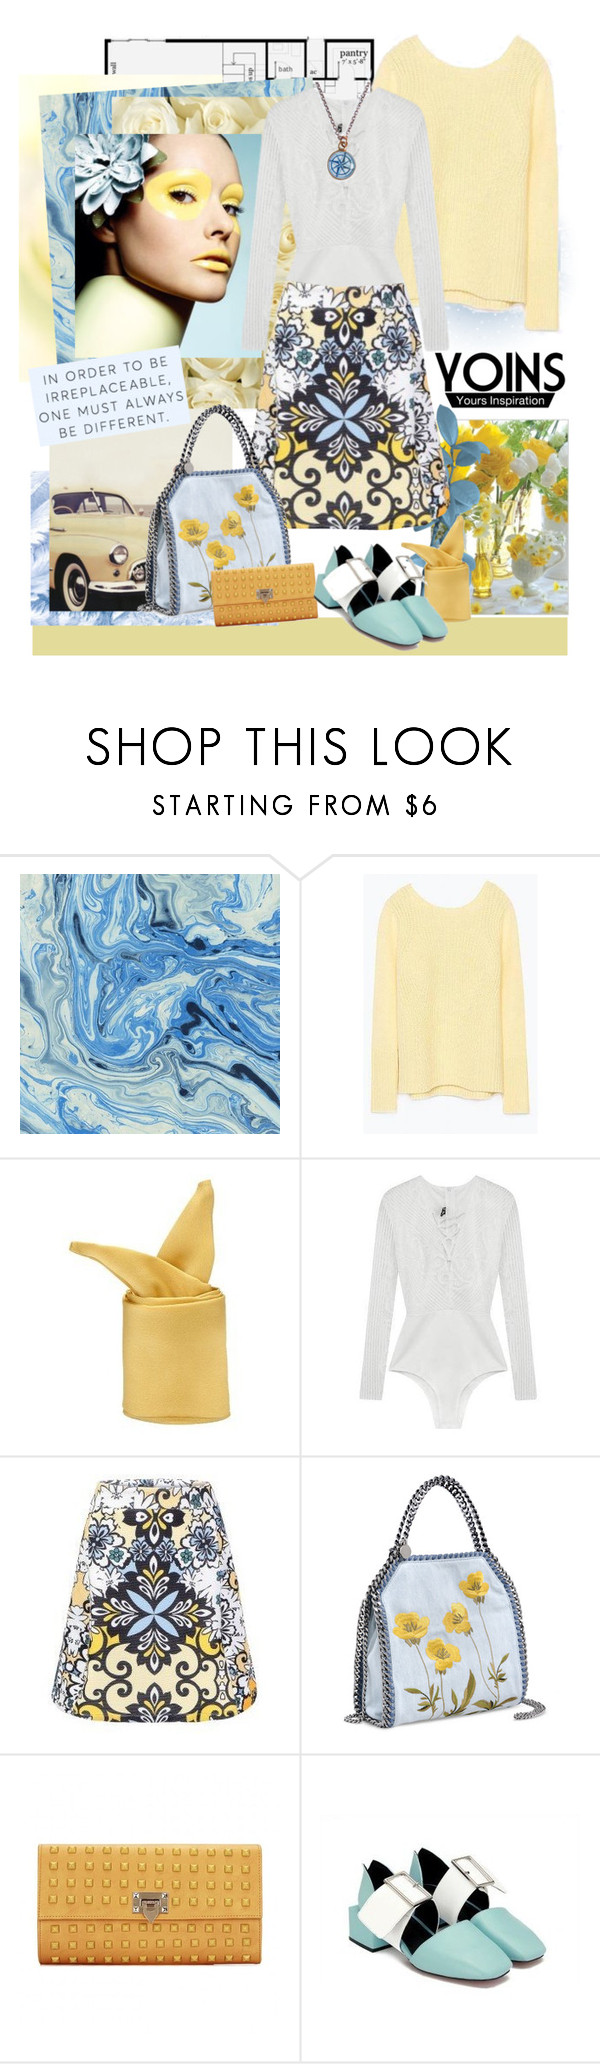 """Yoins....new 113."" by carola-corana ❤ liked on Polyvore featuring STELLA McCARTNEY, Chart Metal Works and yoins"